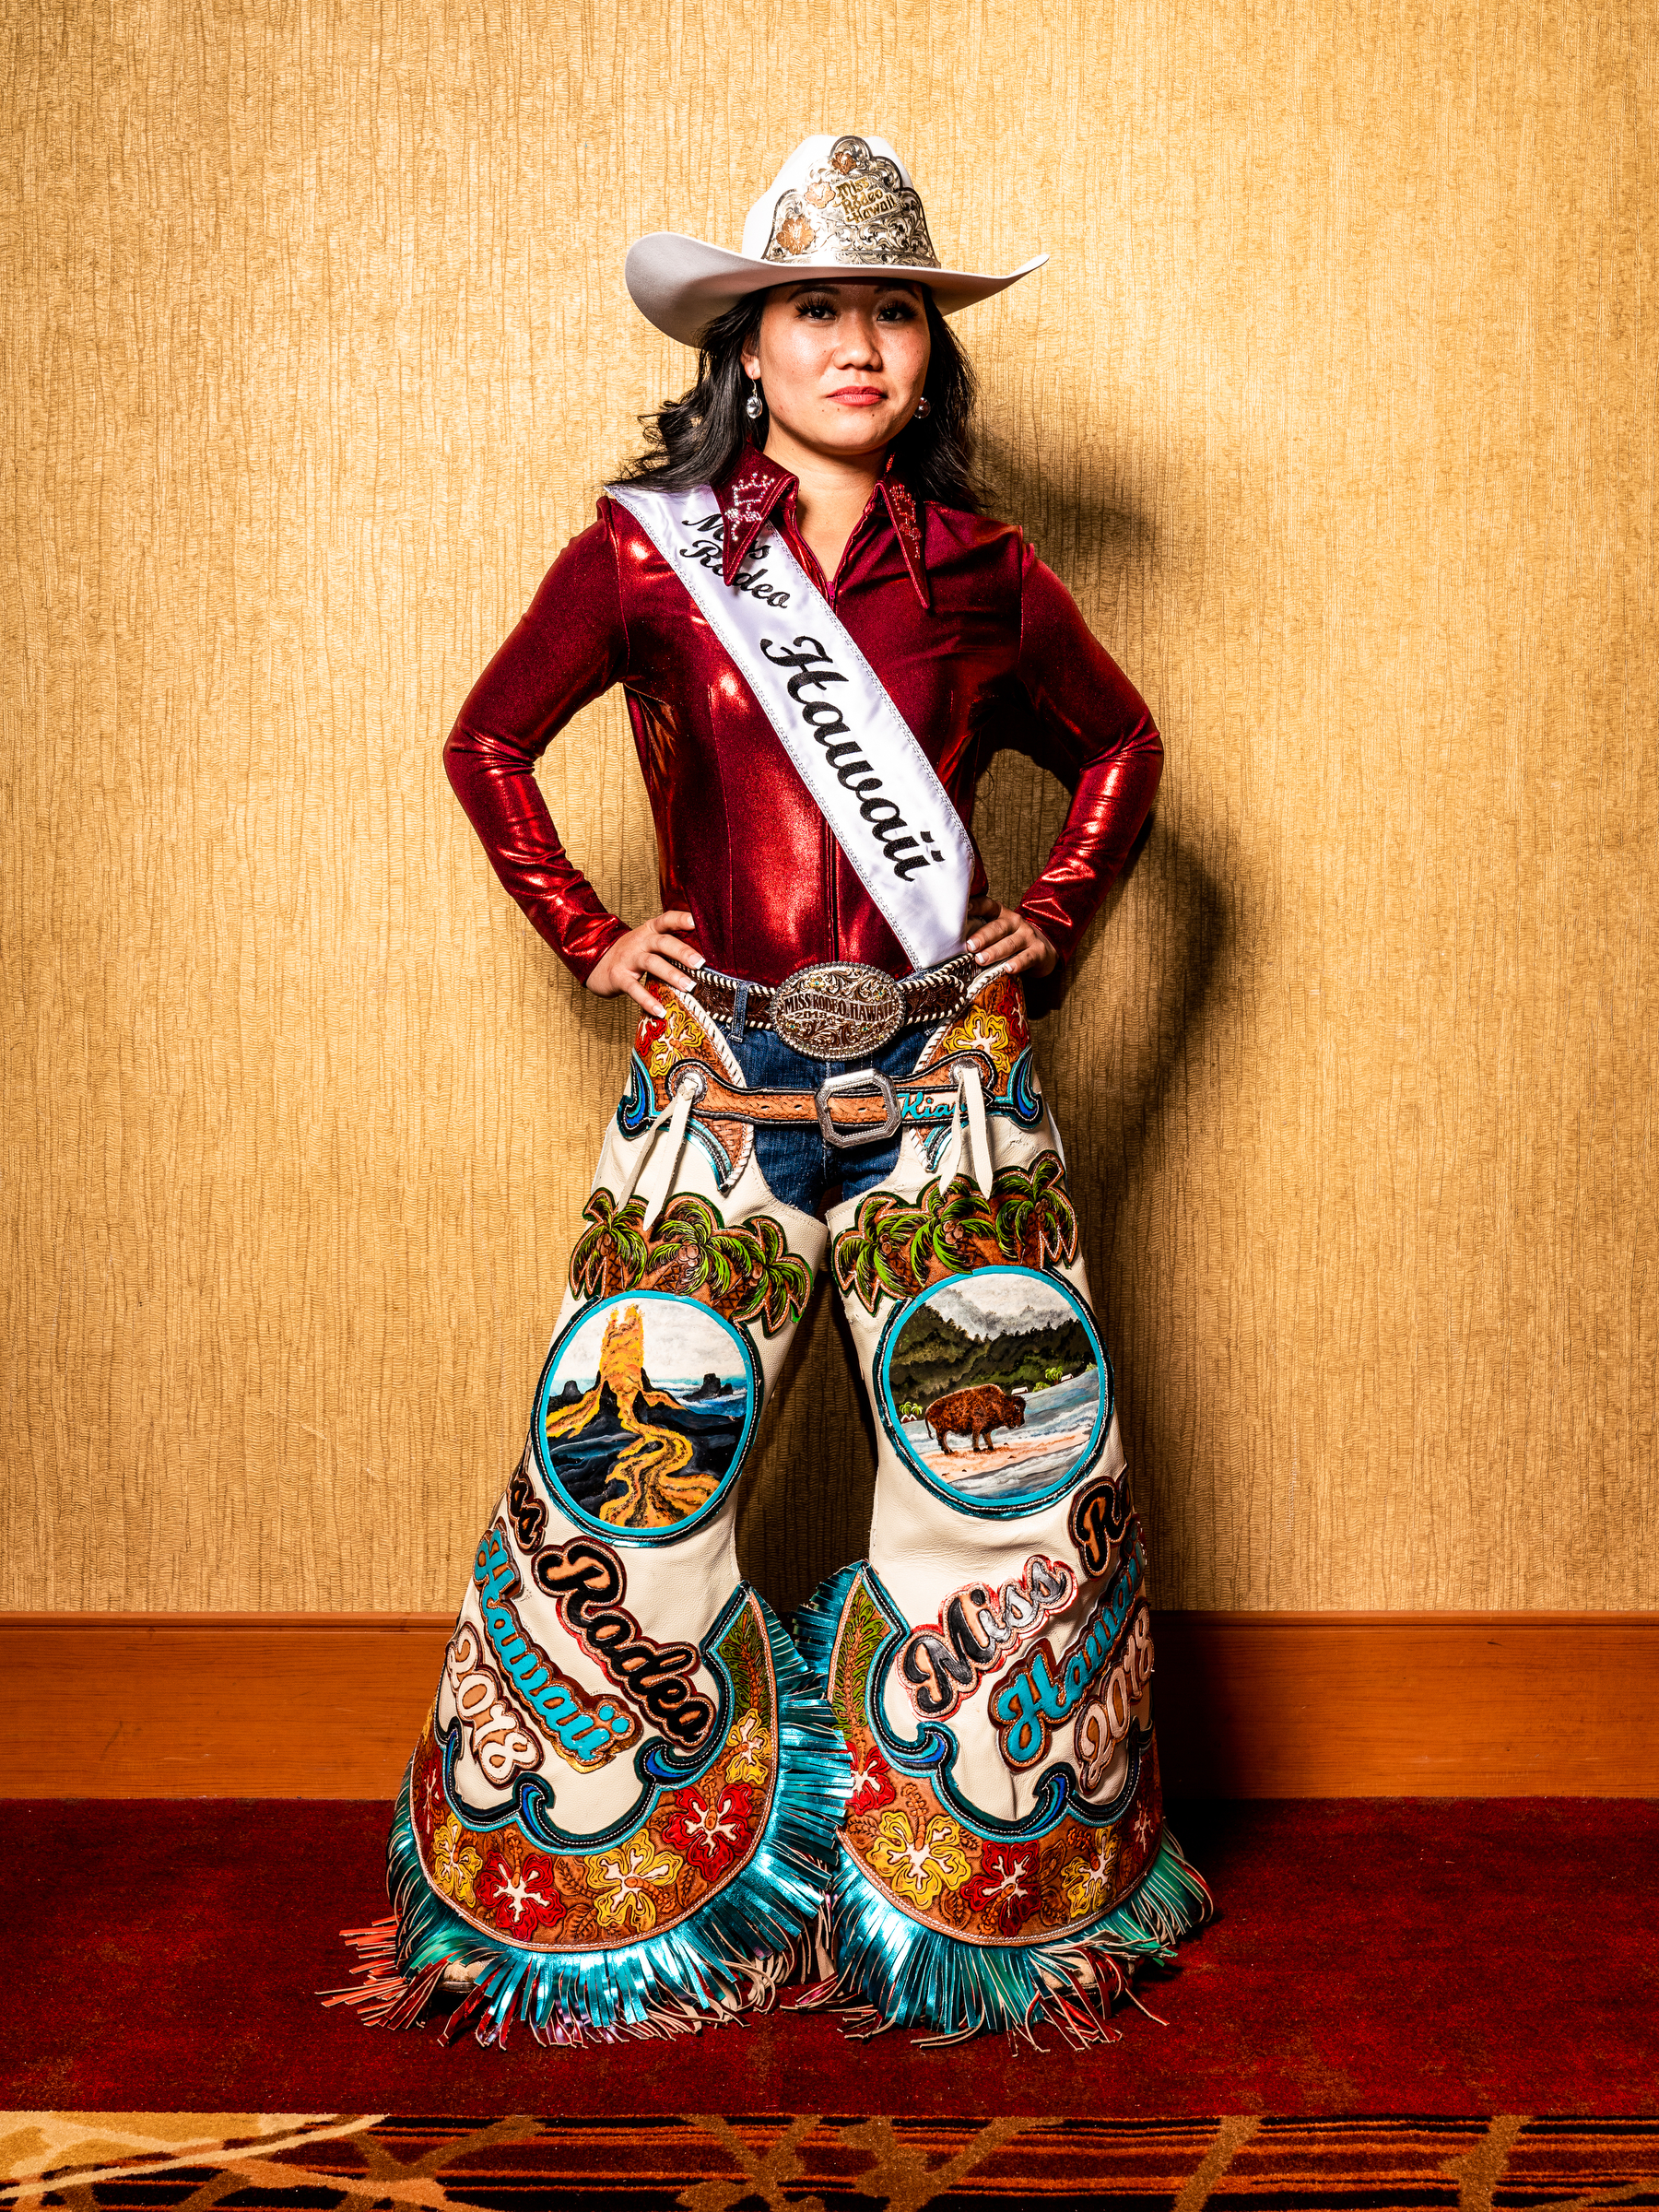 Ms. Hawaii - Ms. Rodeo America Pageant